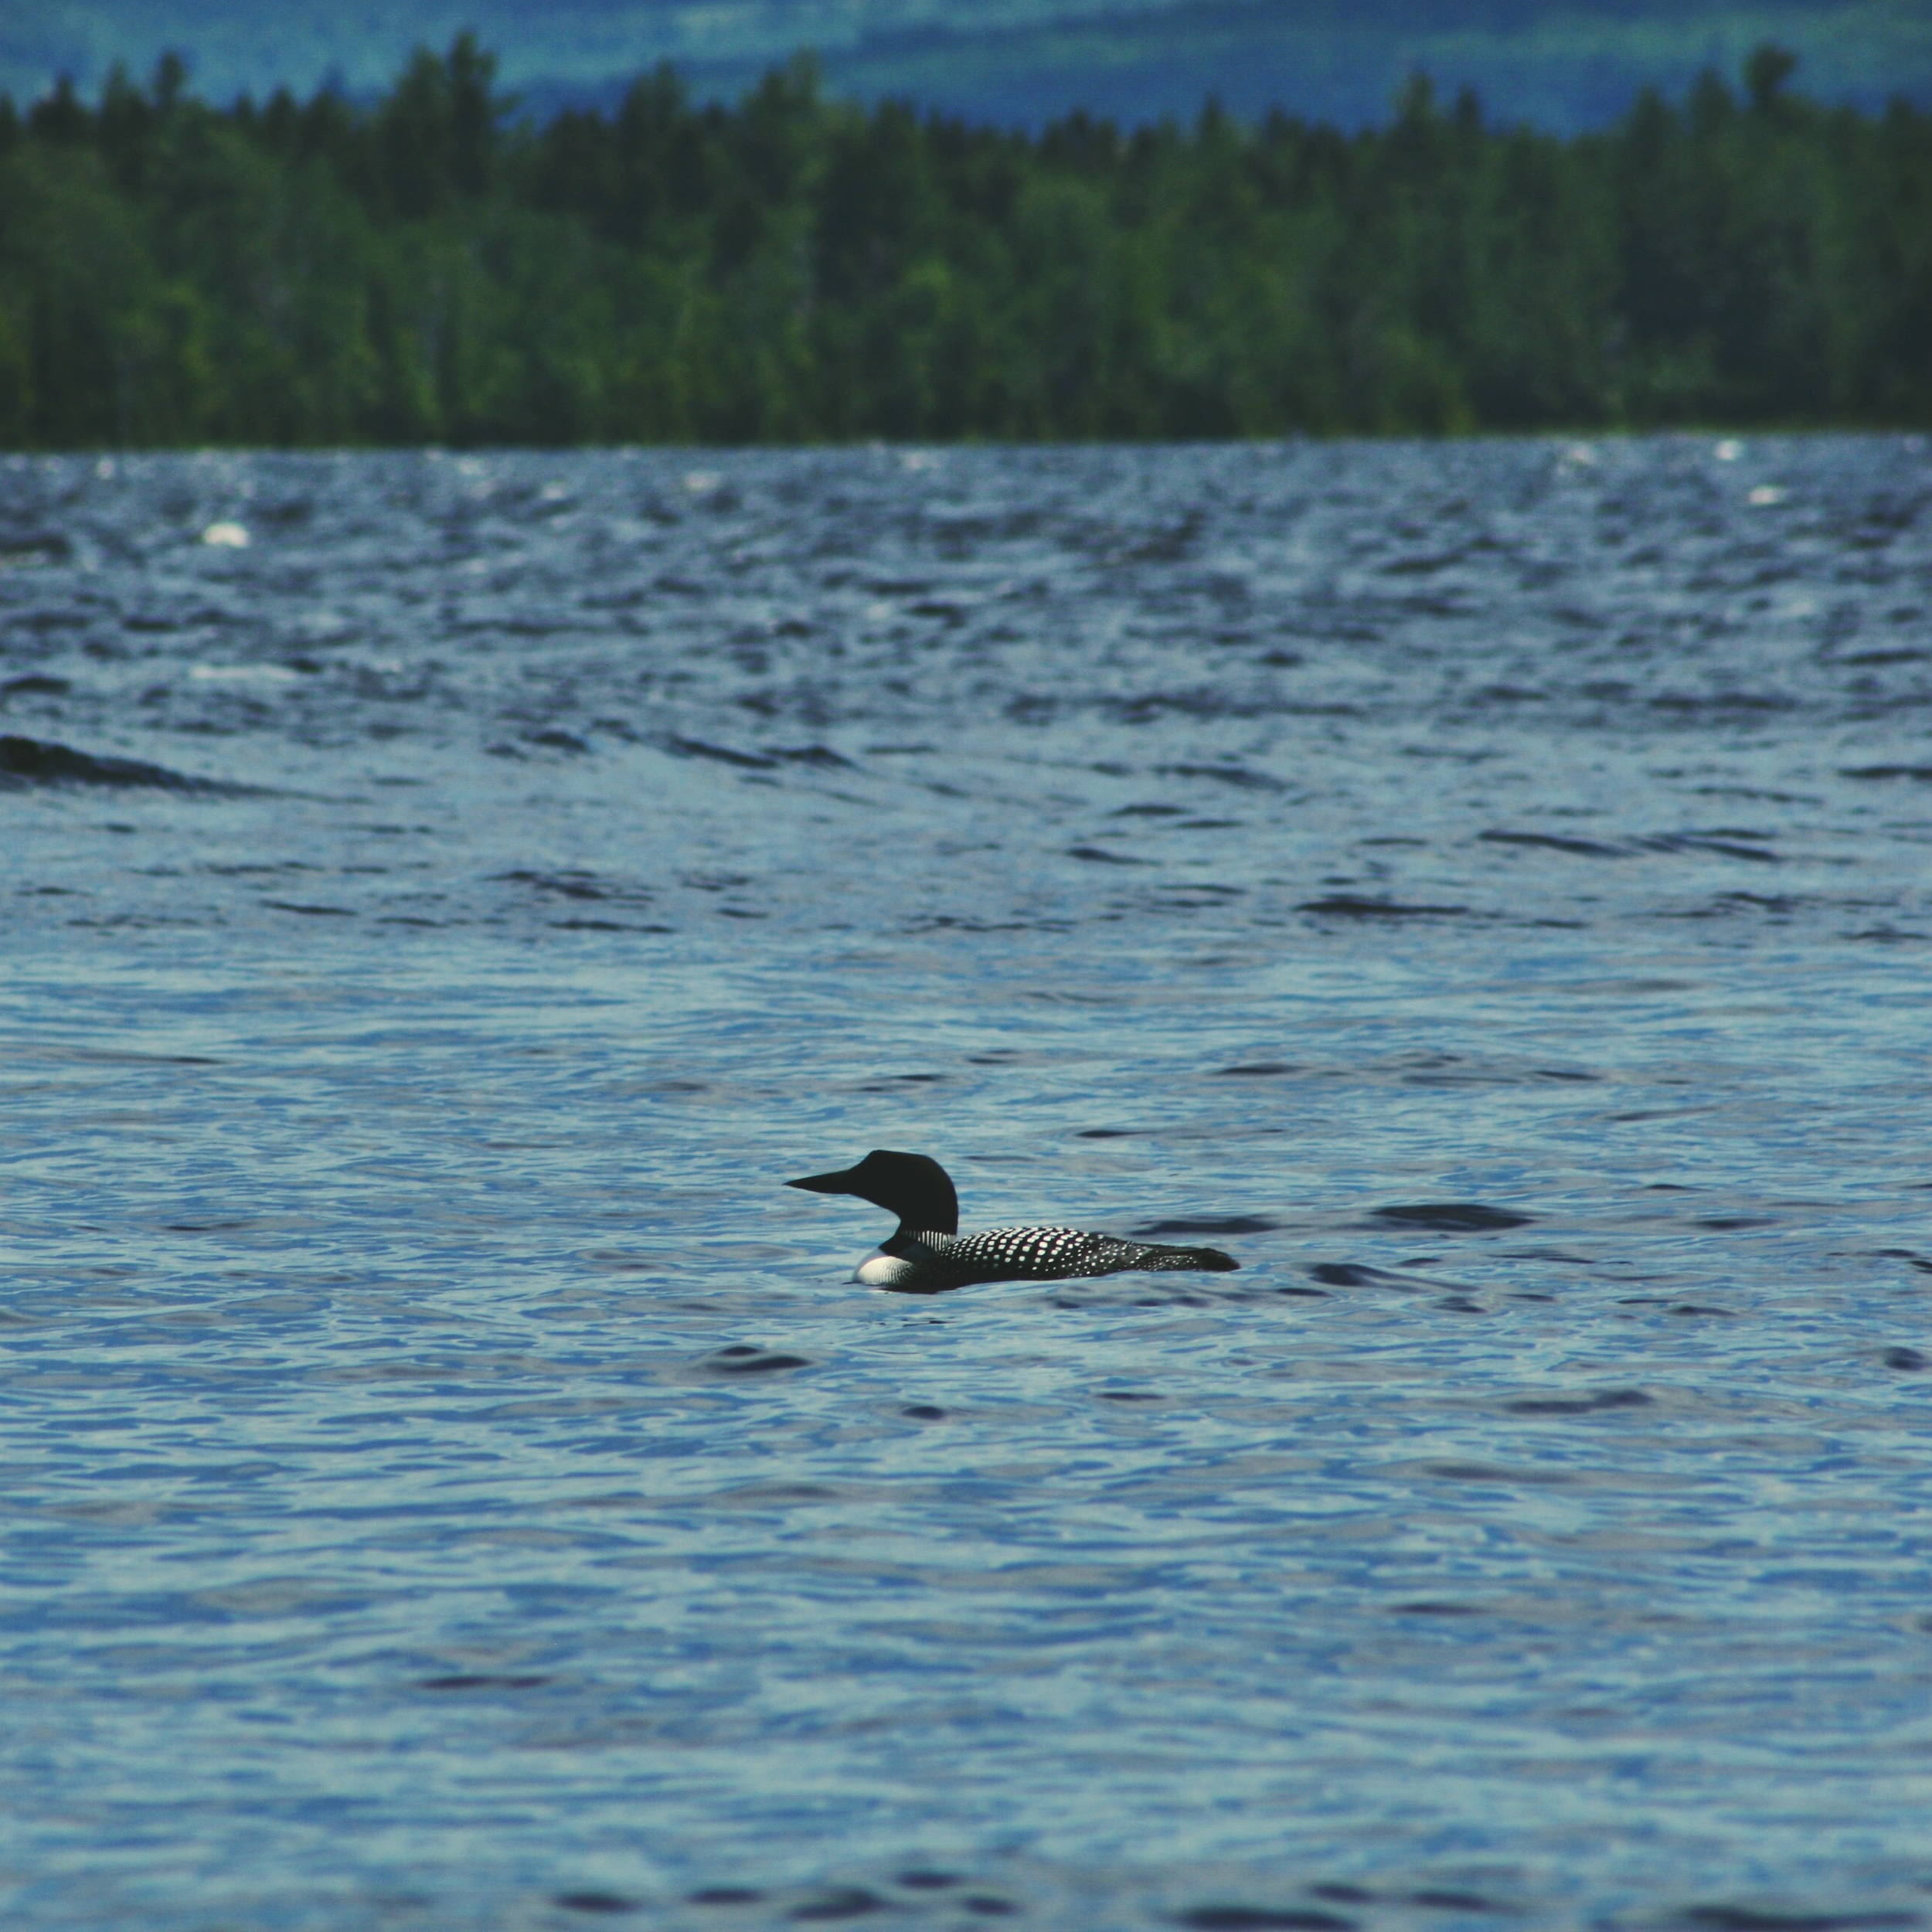 Lunar! The friendly loon who hung out in the cove next to our camp site.